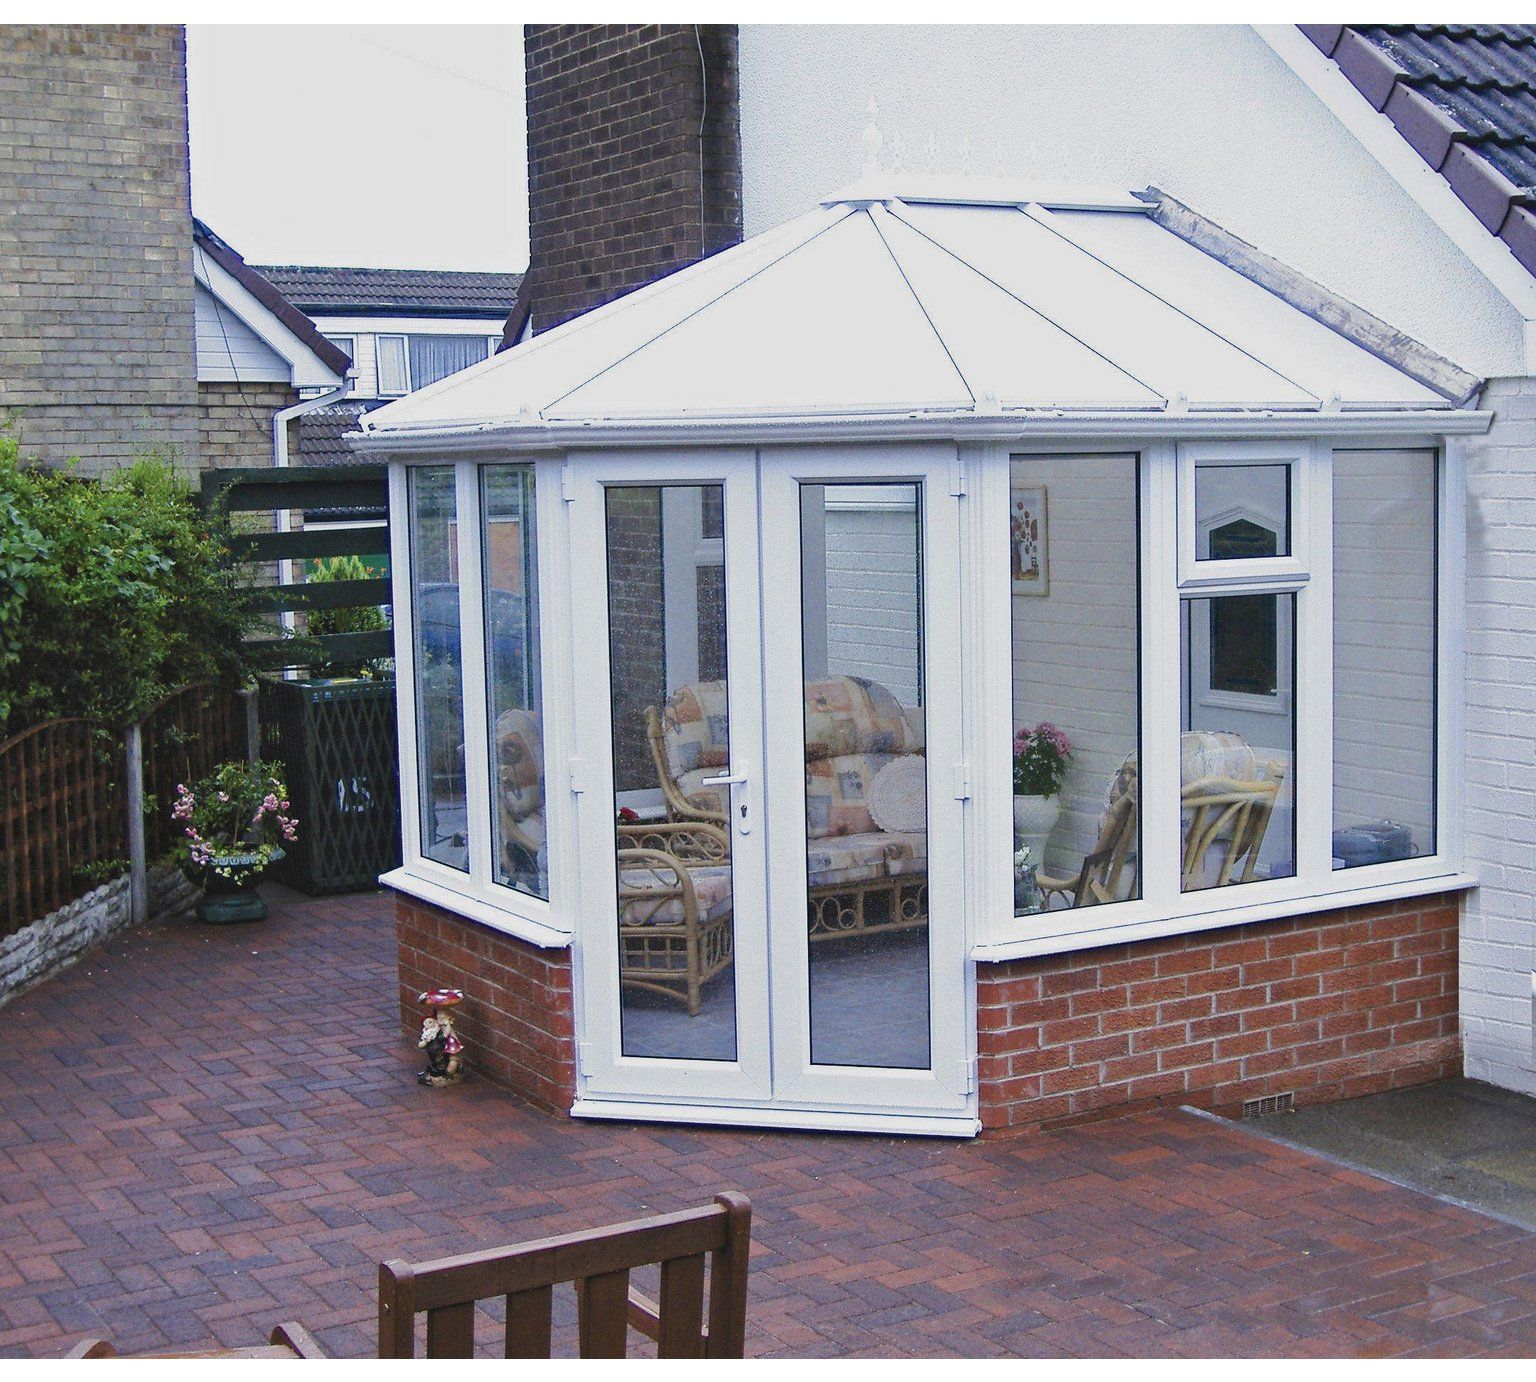 Buy Victorian Dwarf Wall Small Conservatory White At Argos Co Uk Visit Argos Co Uk To Shop Online F Small Conservatory Victorian Conservatory House Exterior